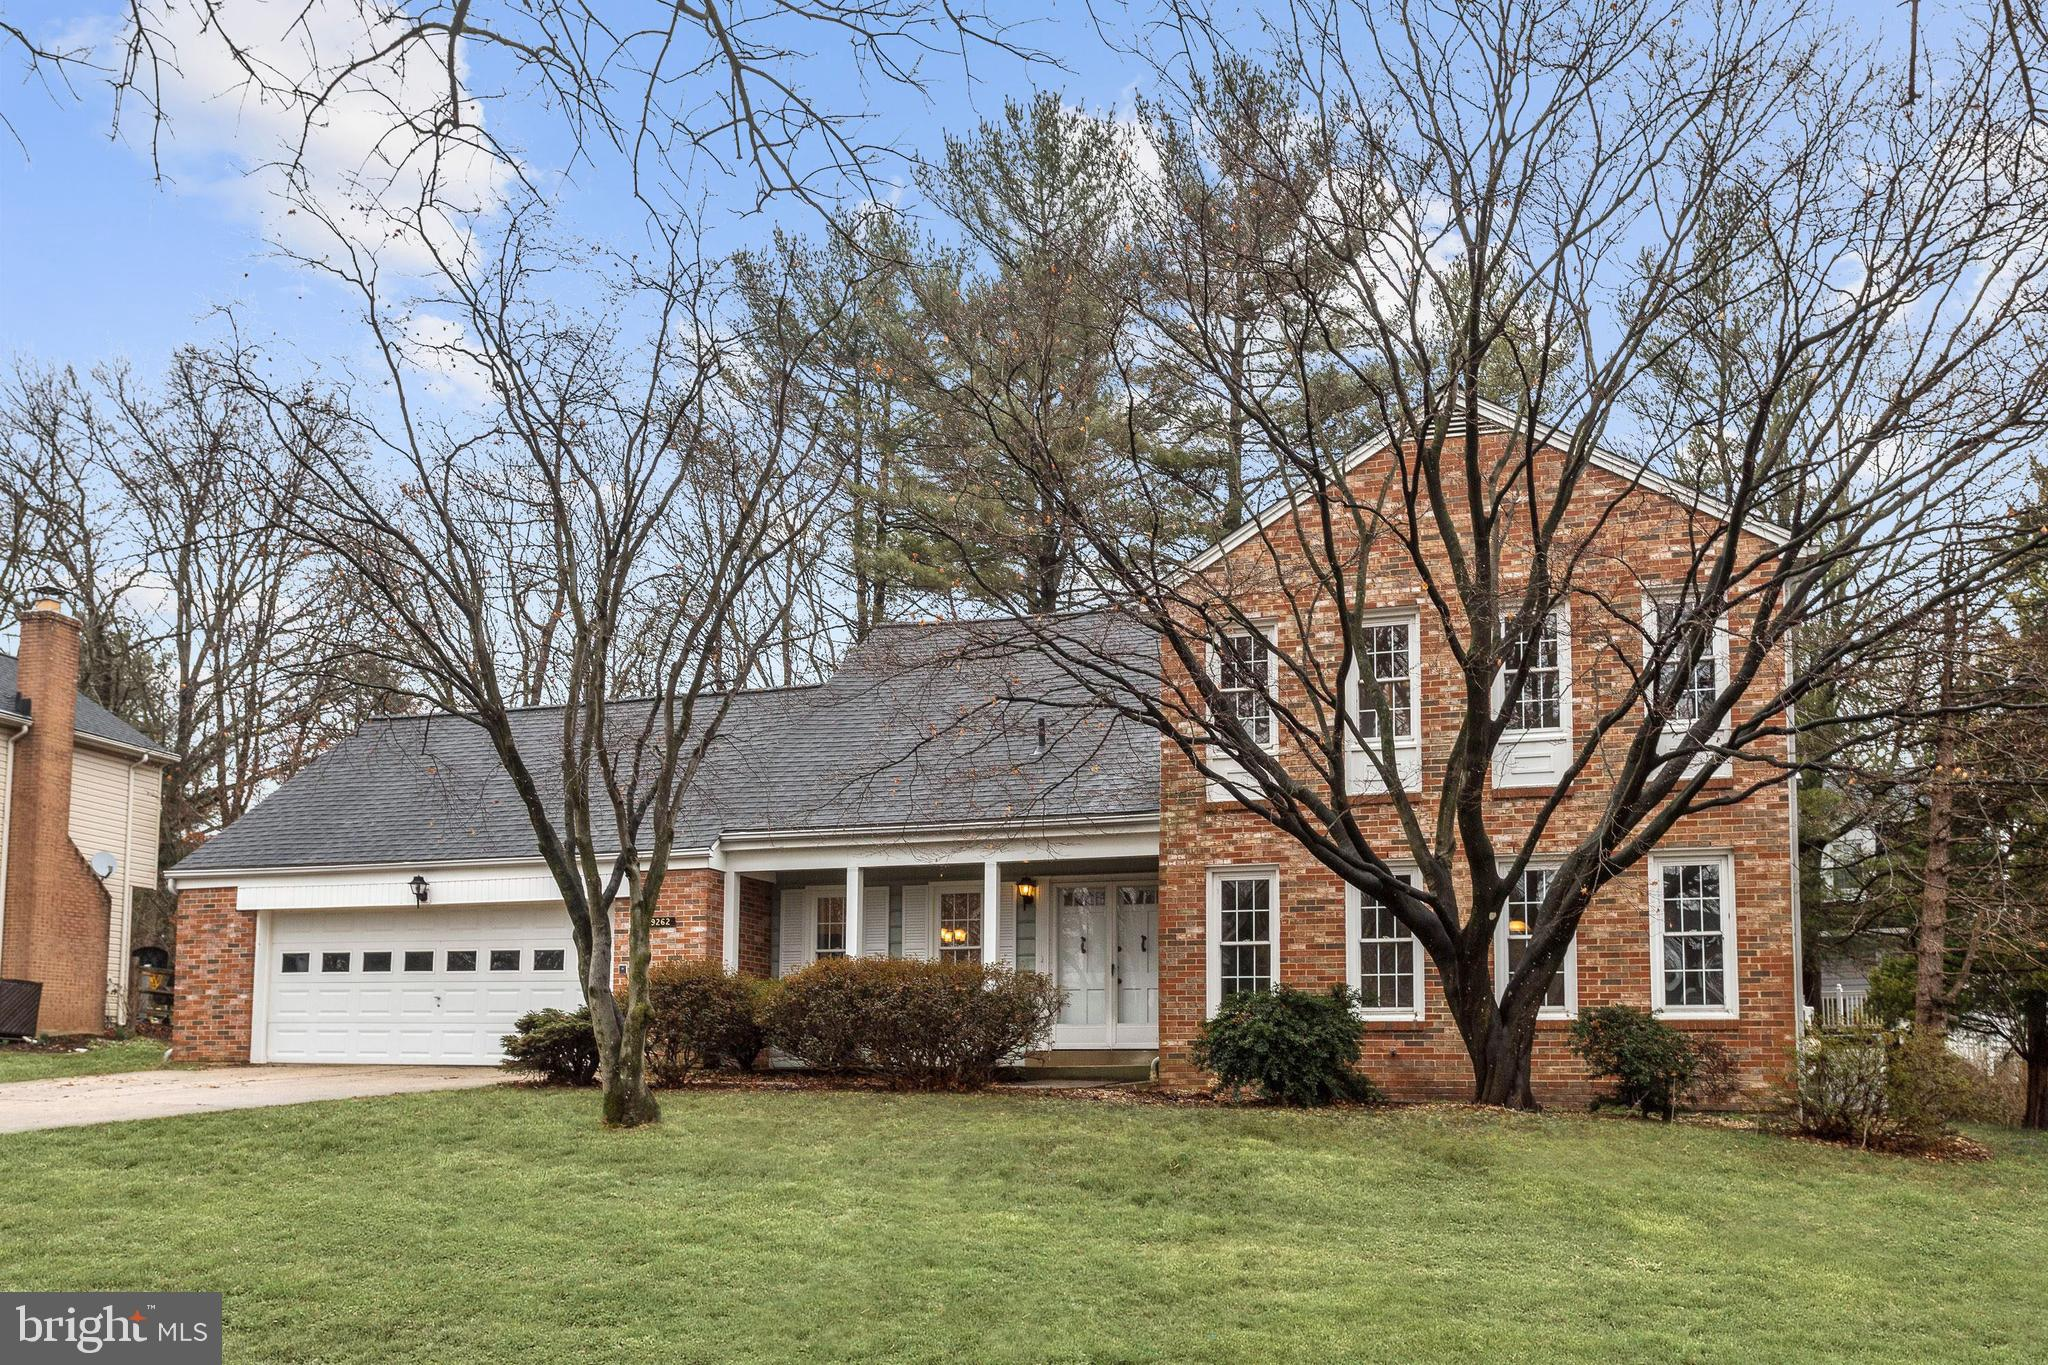 9262 GRAPE WINE COURT, COLUMBIA, MD 21045